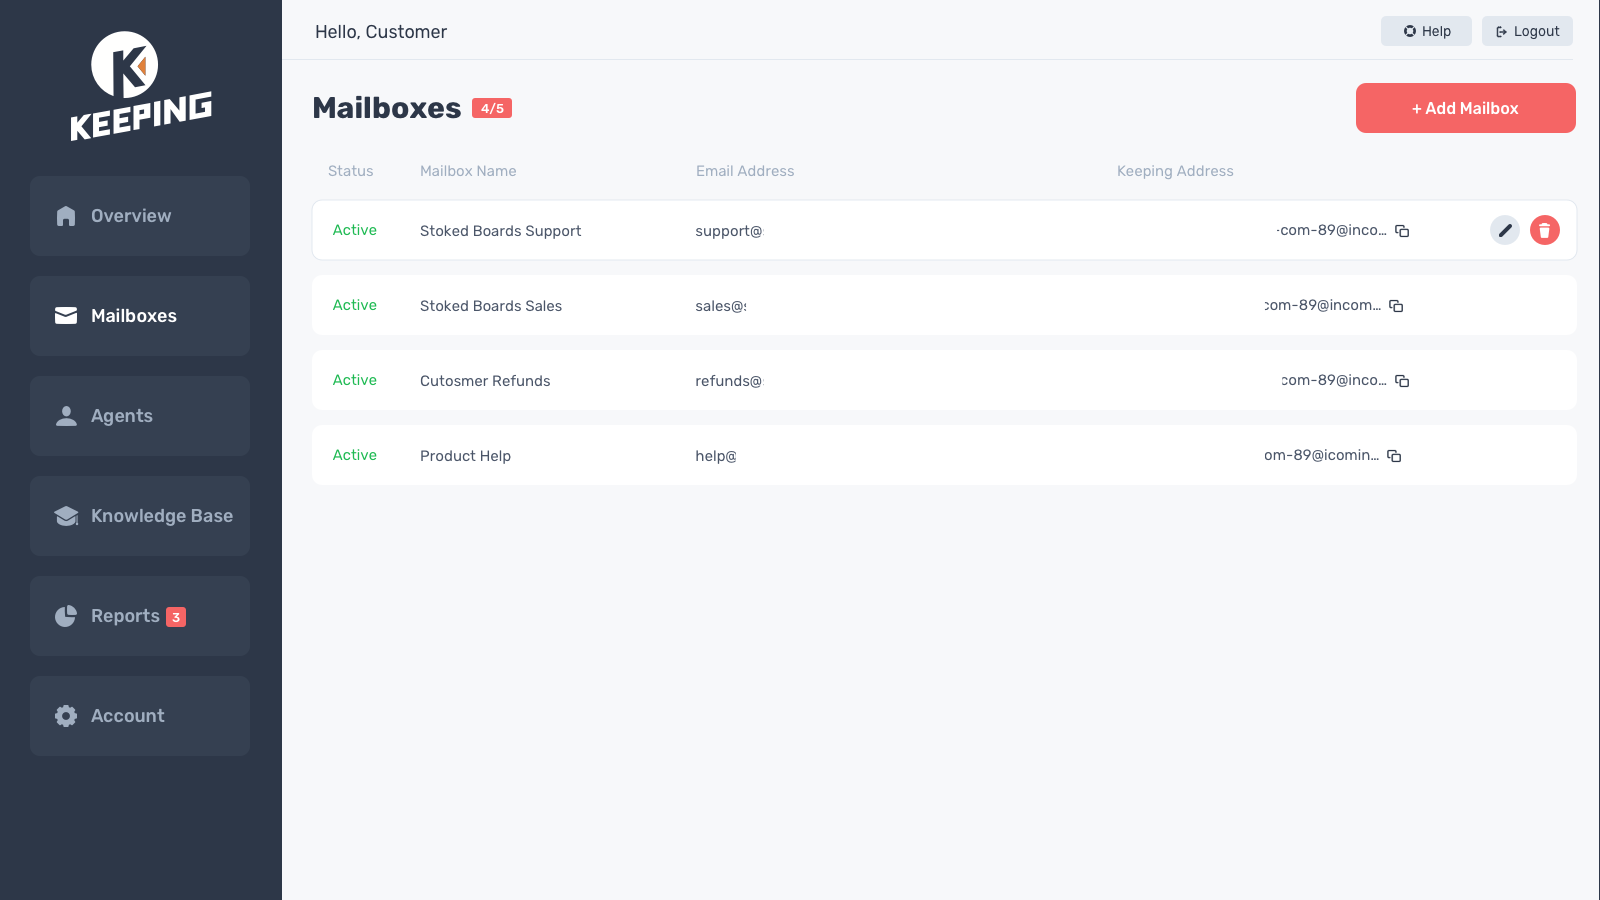 Manage multiple mailboxes with Keeping